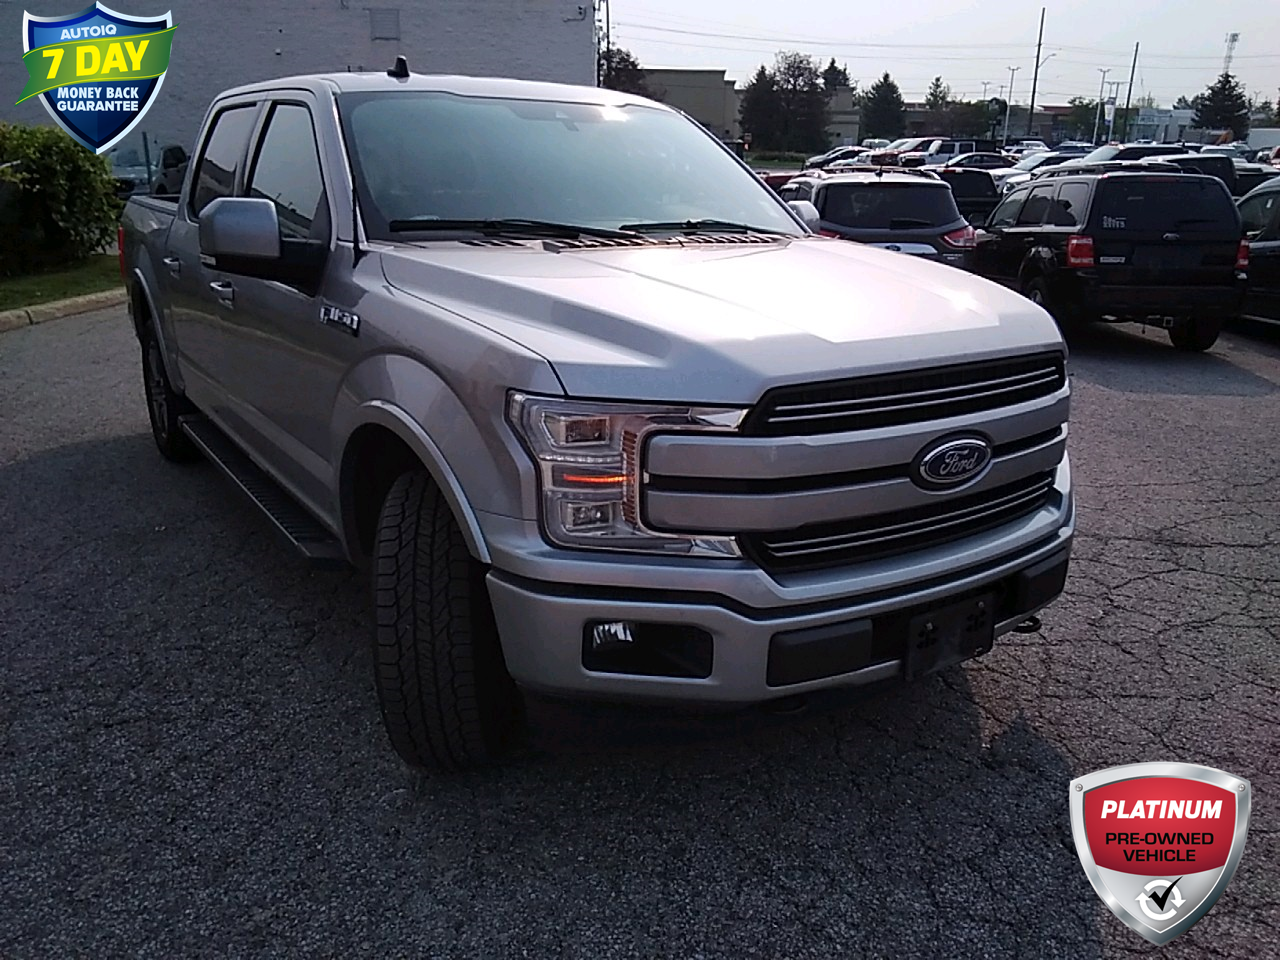 used 2020 Ford F-150 car, priced at $61,930